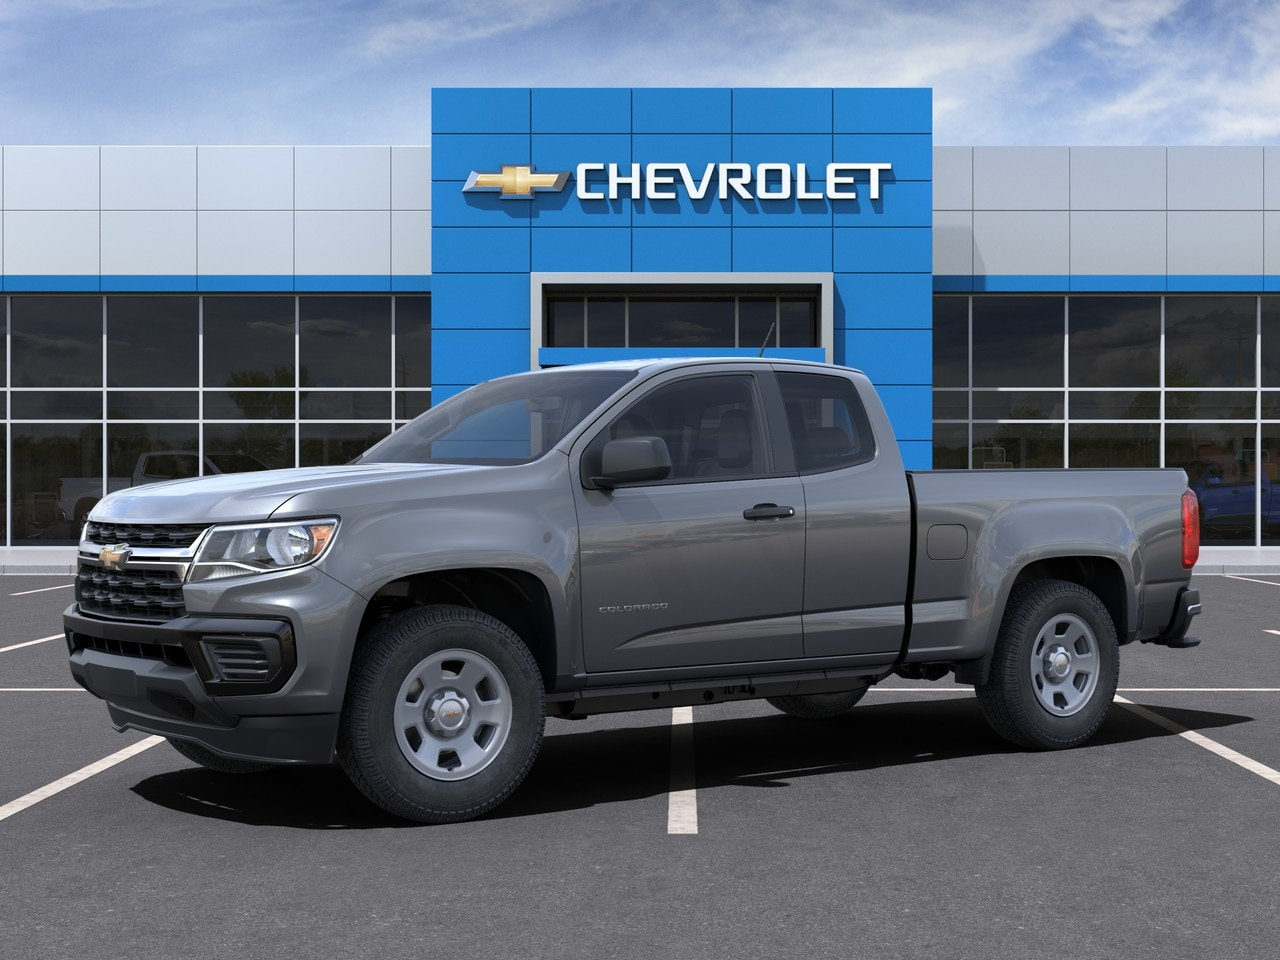 2021 Chevrolet Colorado Extended Cab 4x2, Pickup #M1193360 - photo 1